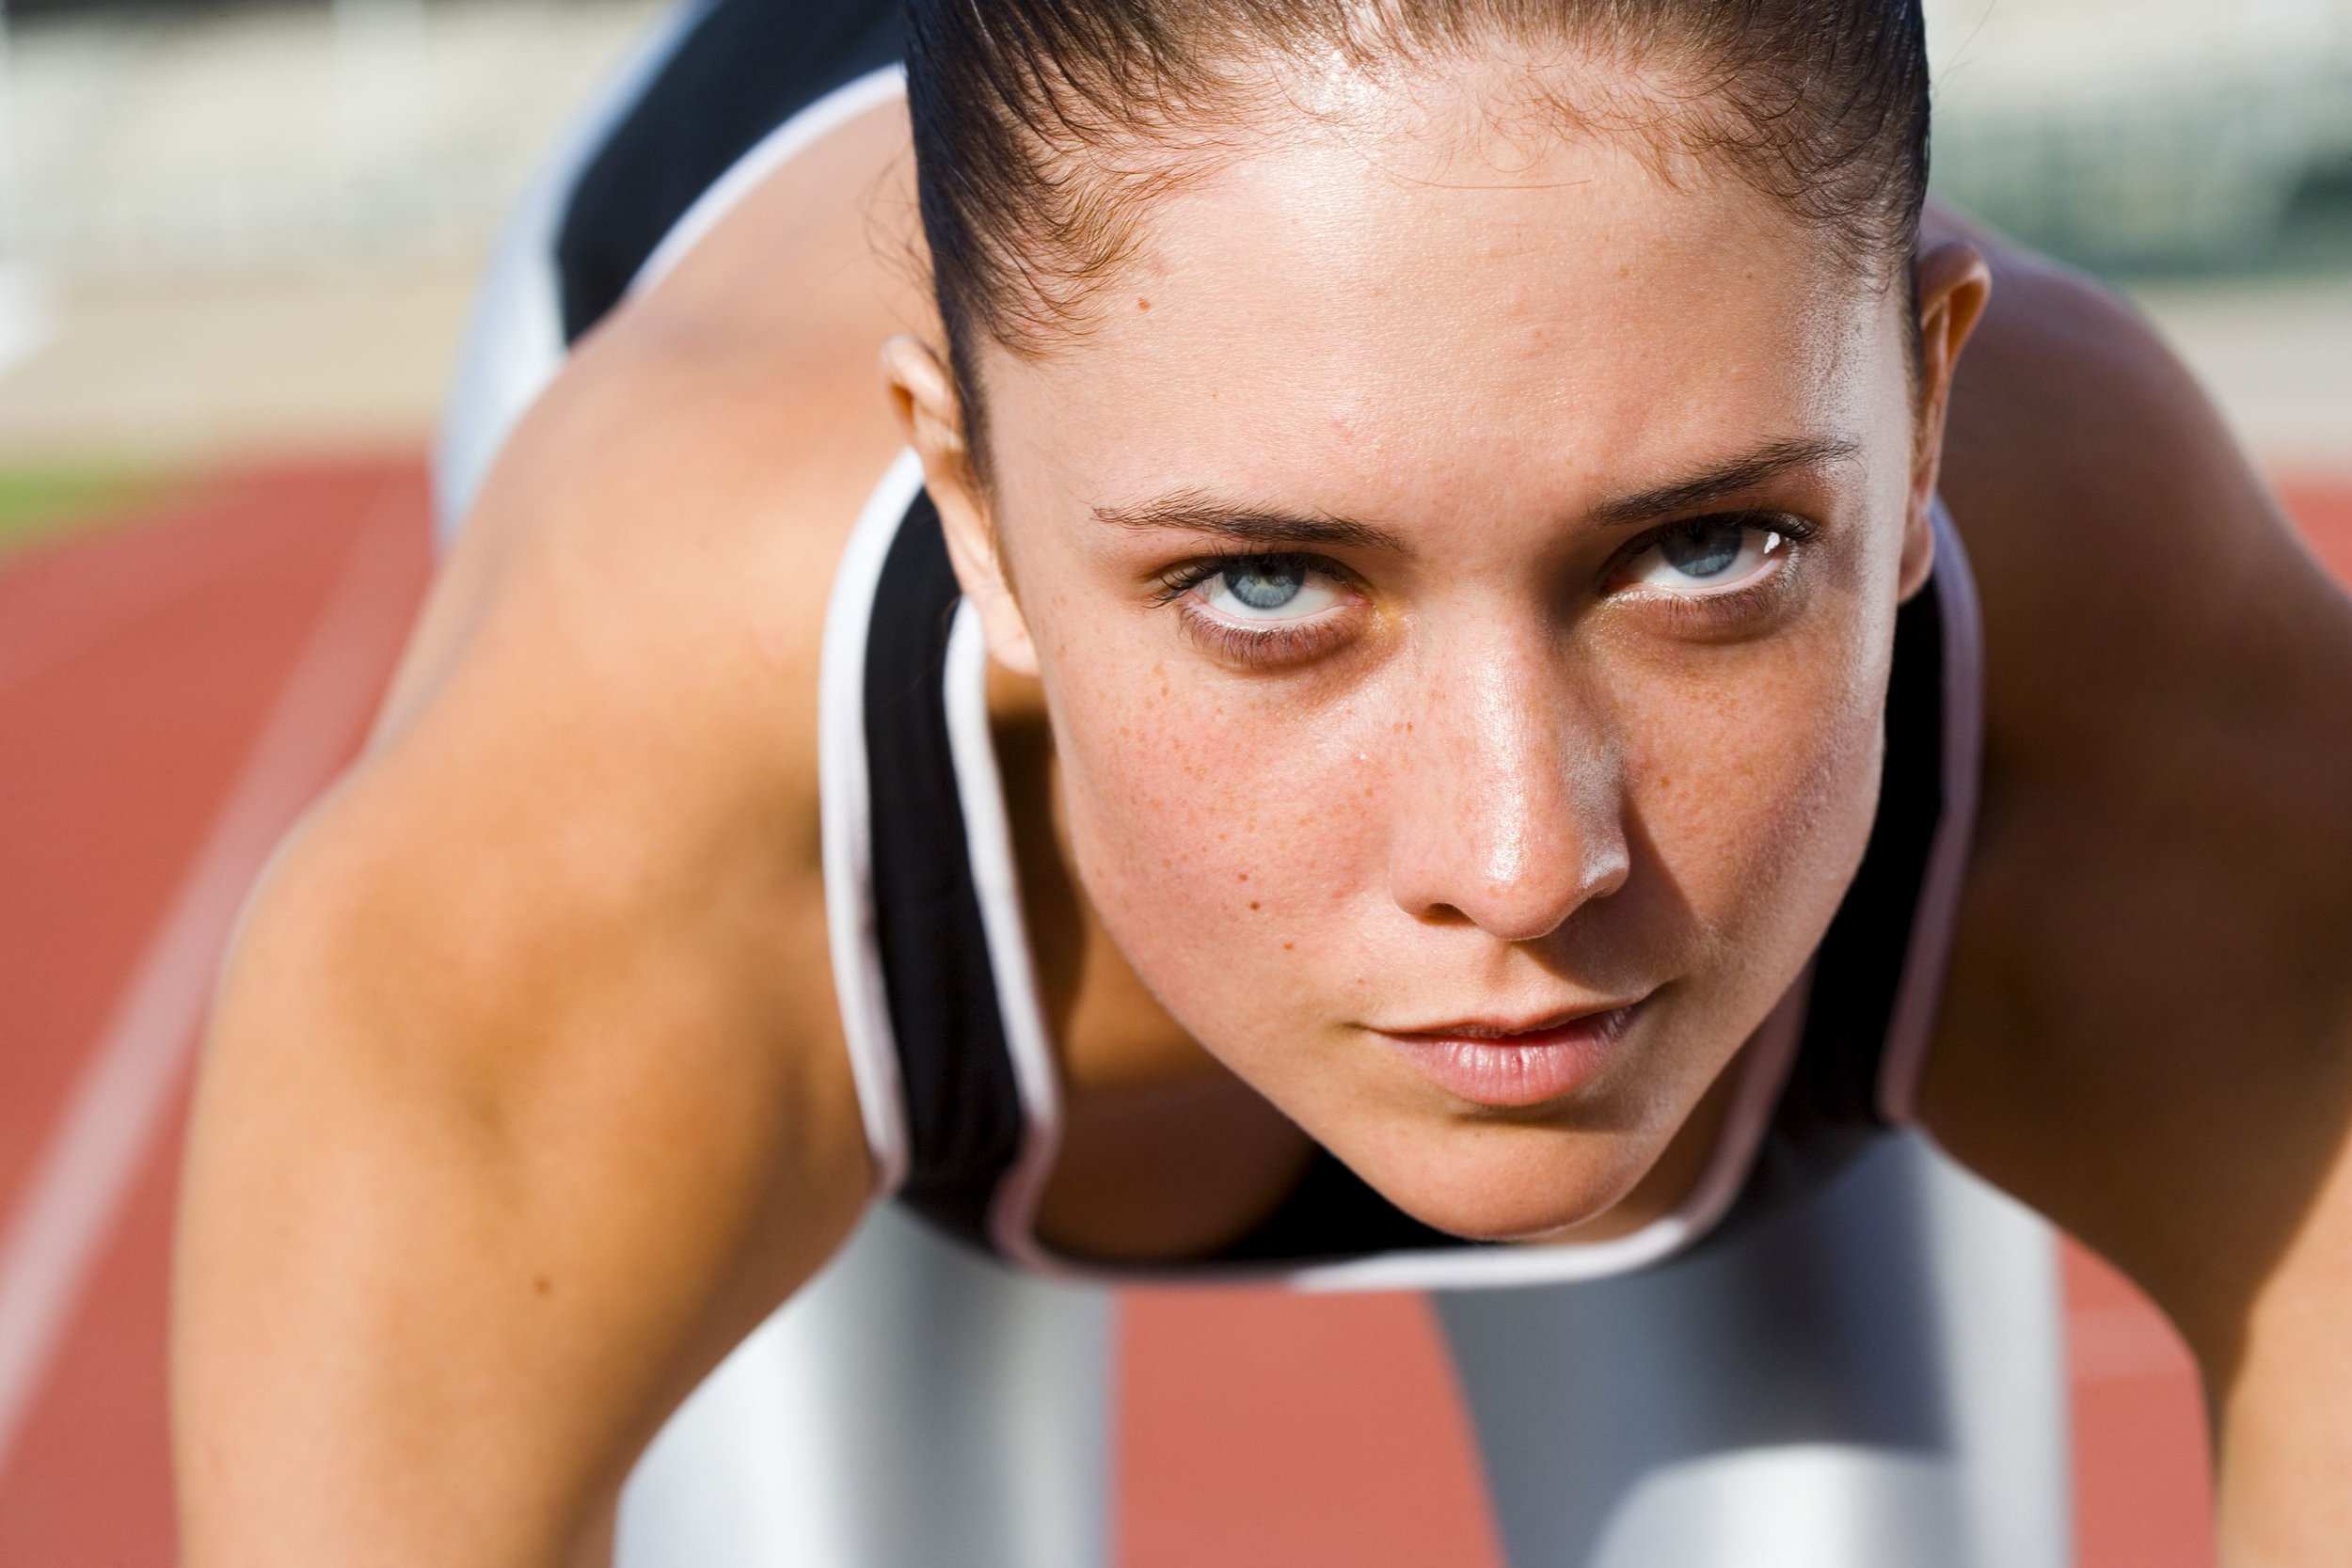 determined-woman-royalty-free-image-78633515-1531836378.jpg